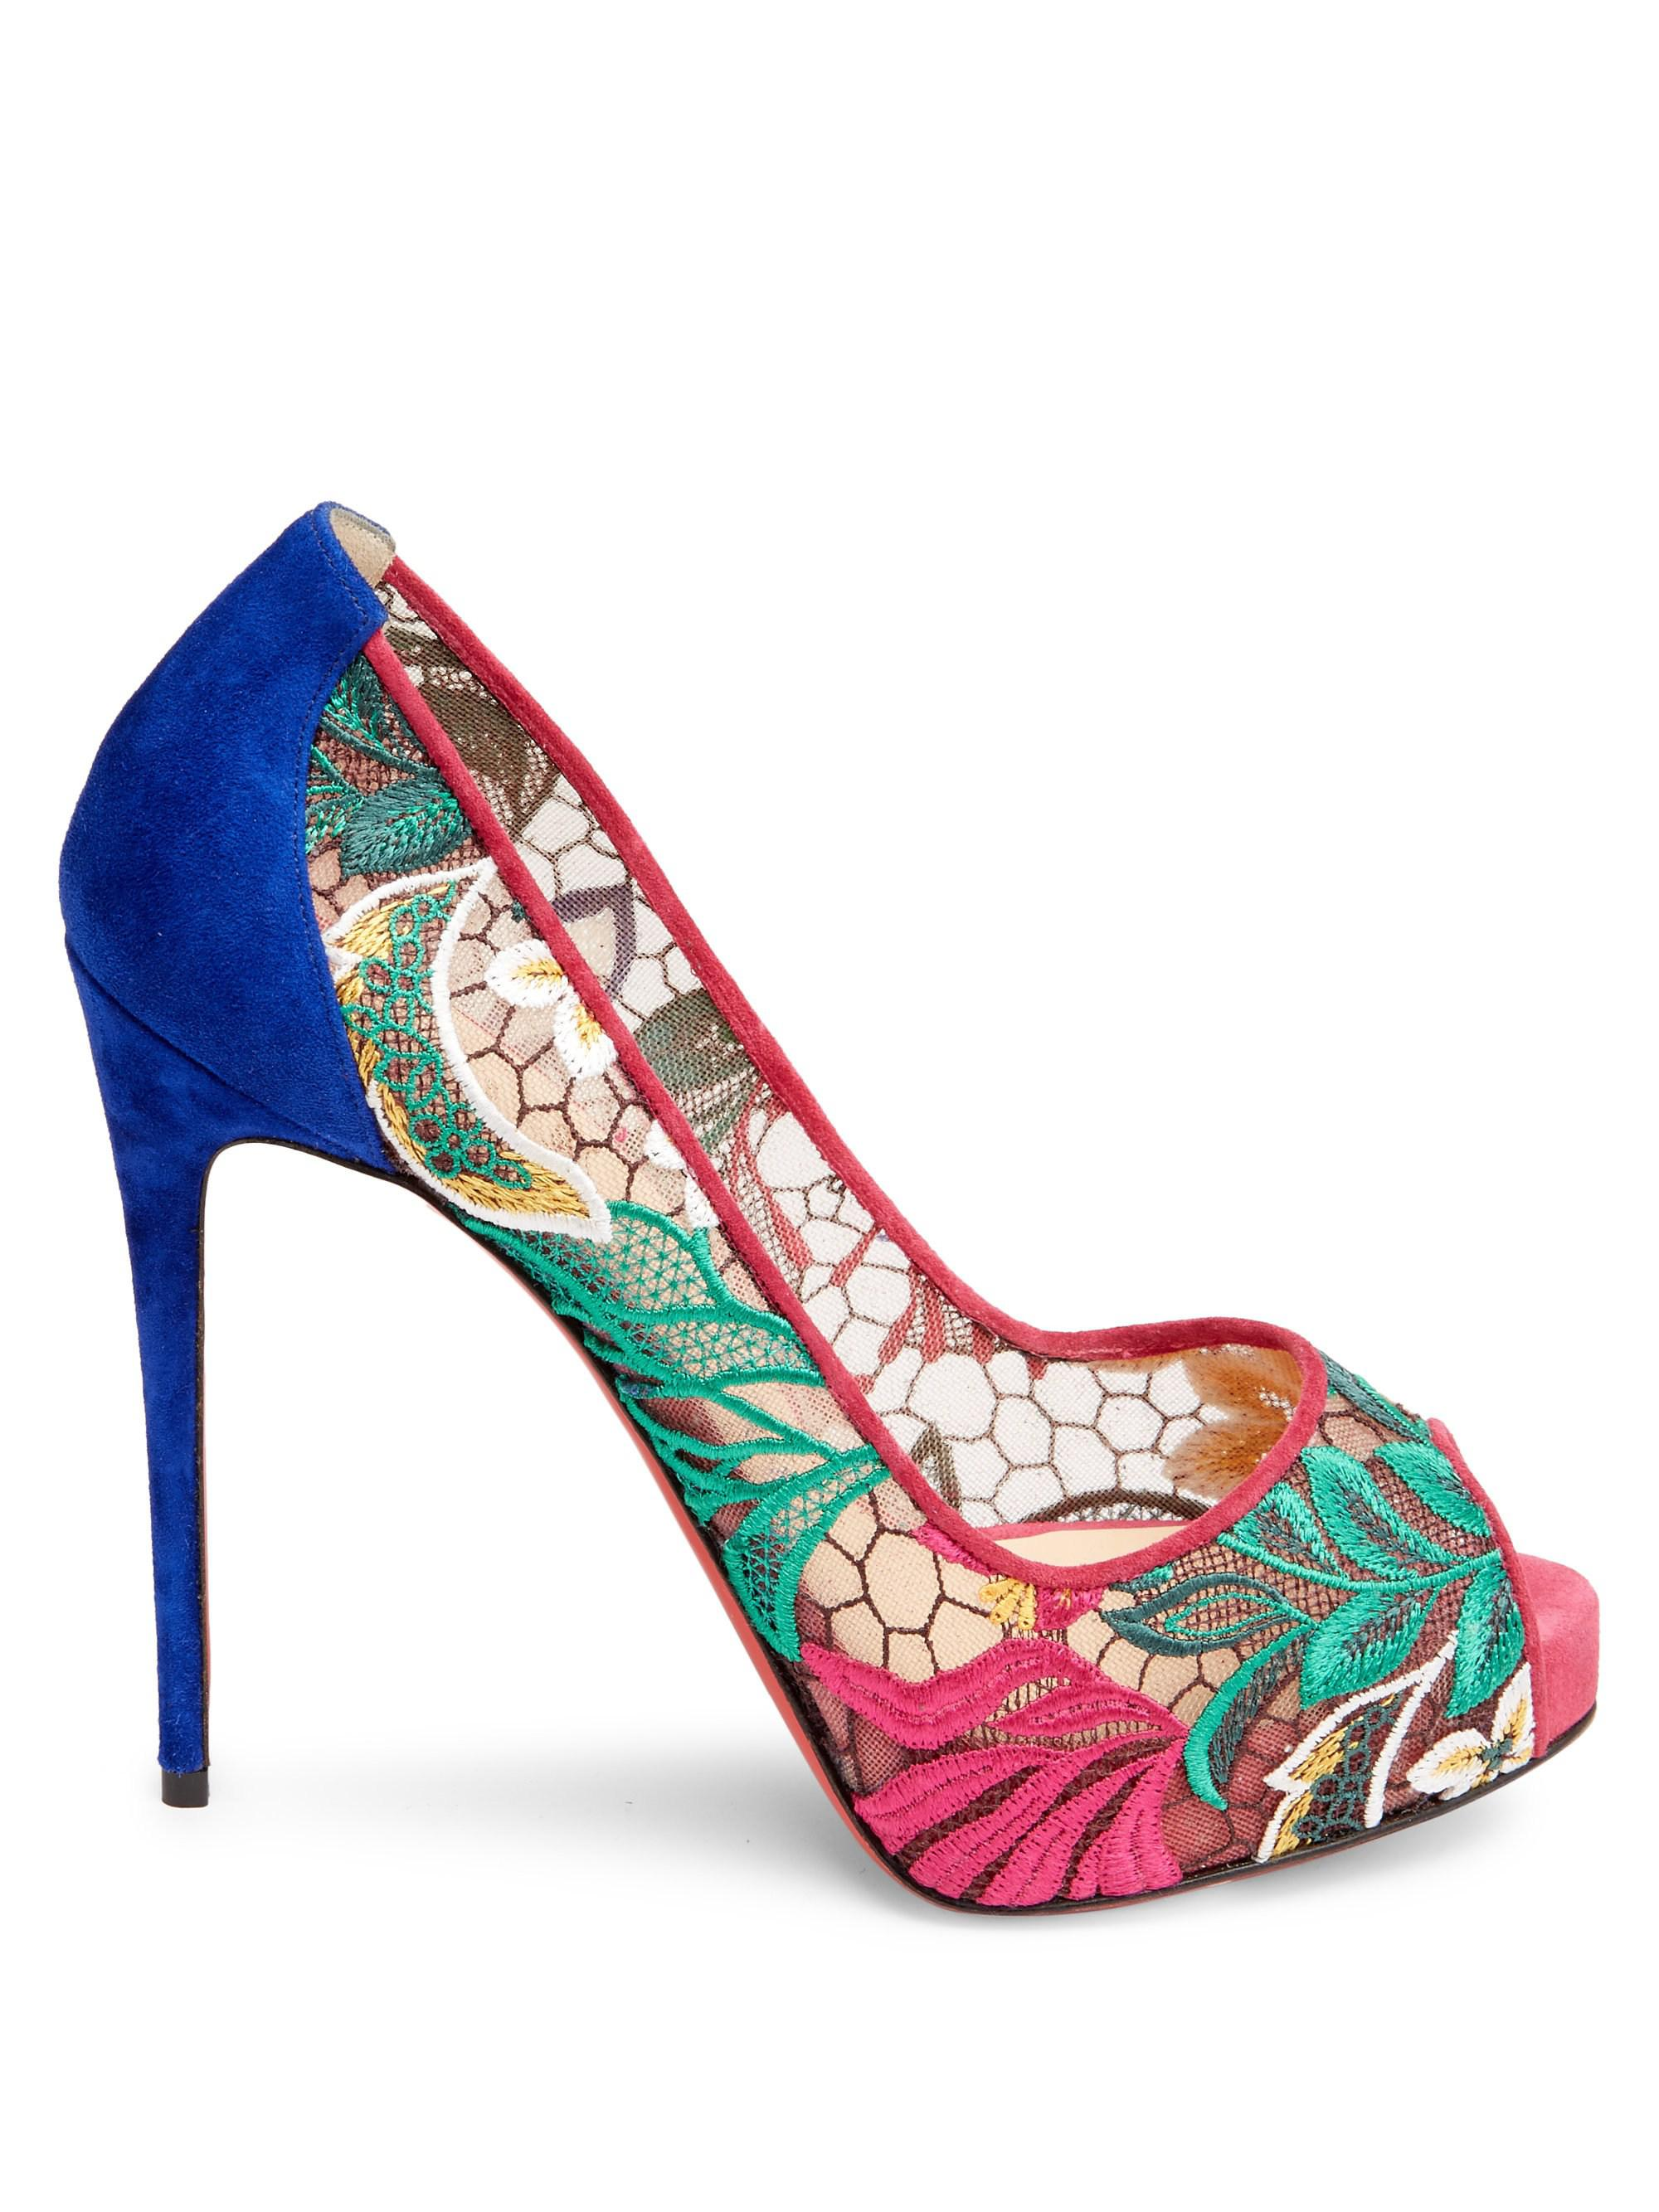 f2986be3705 Lyst - Christian Louboutin Very Lace 120 Floral Platform Pump